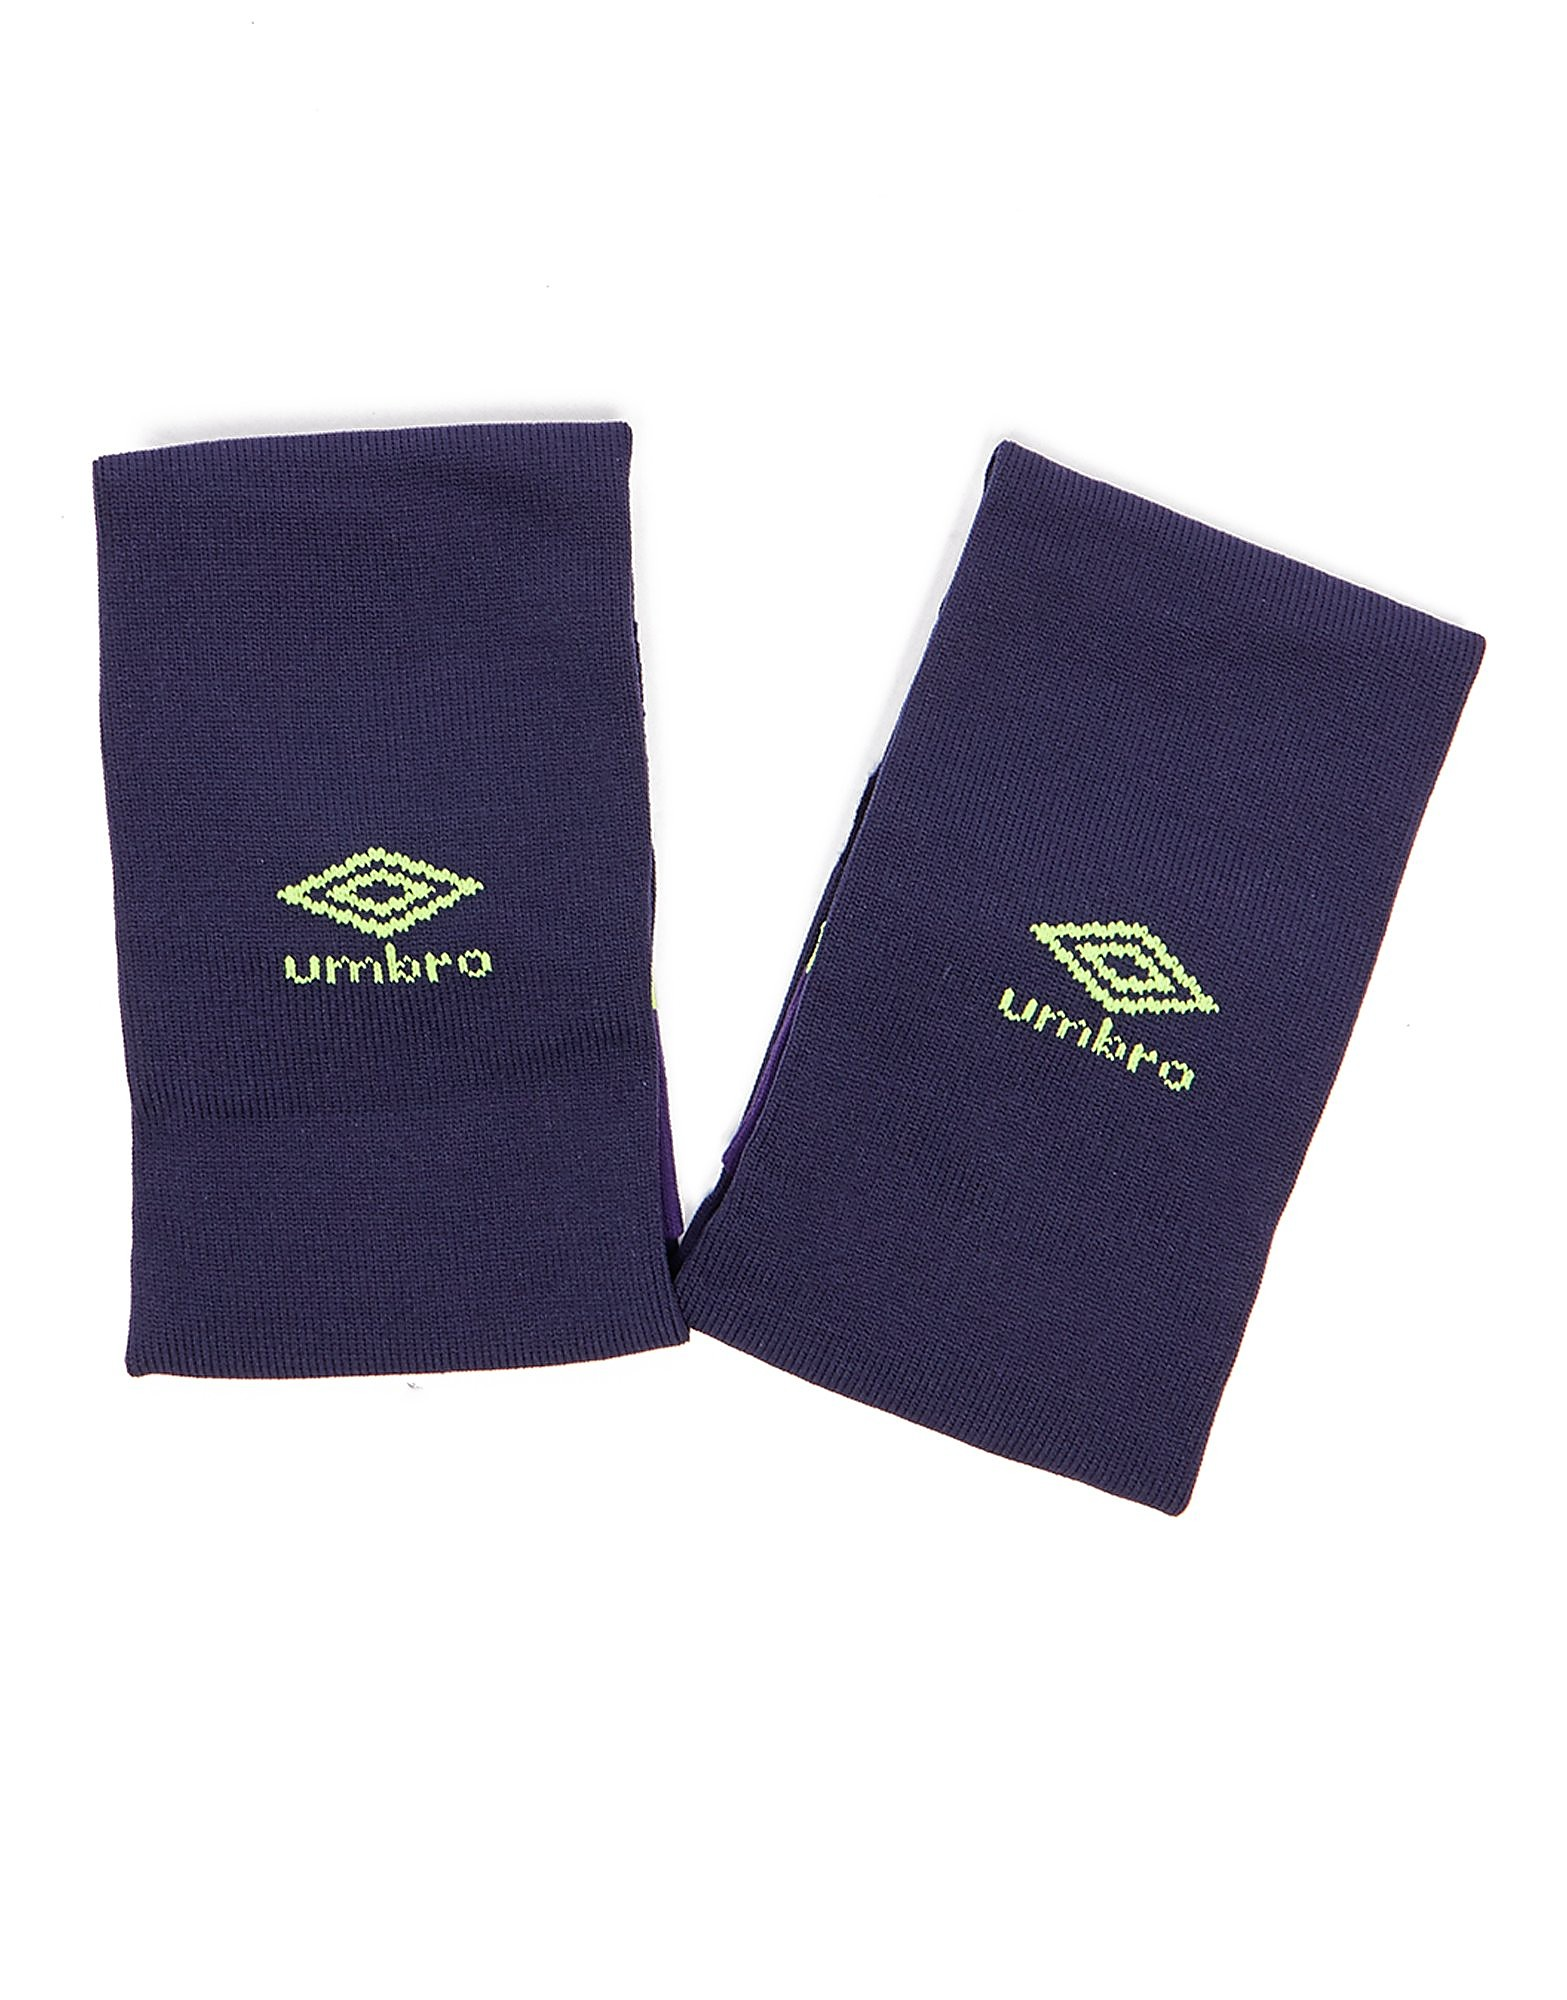 Umbro Everton FC 2017/18 Third Socks